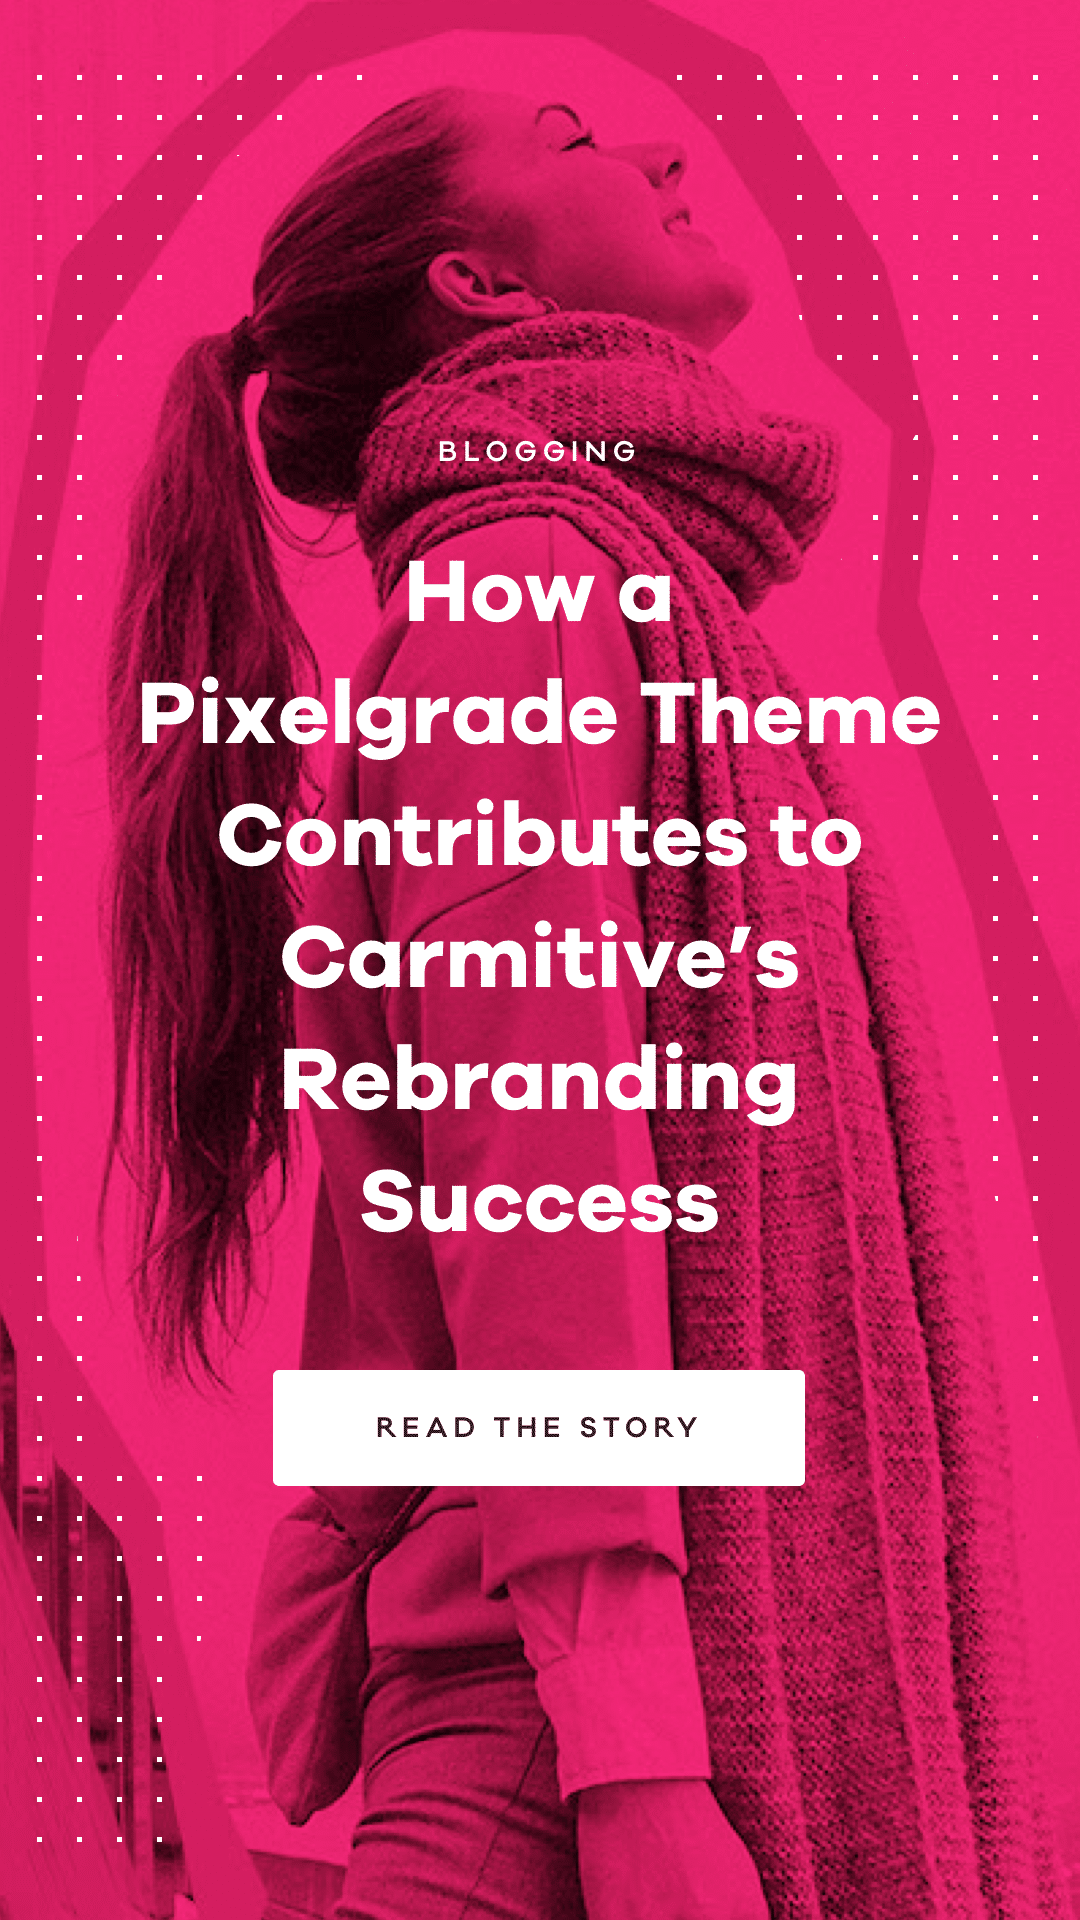 Hive is a blogging WordPress theme that contributed to Carmitive's rebranding success. Learn more about how this Pixelgrade product helps you stand out from the crowd.